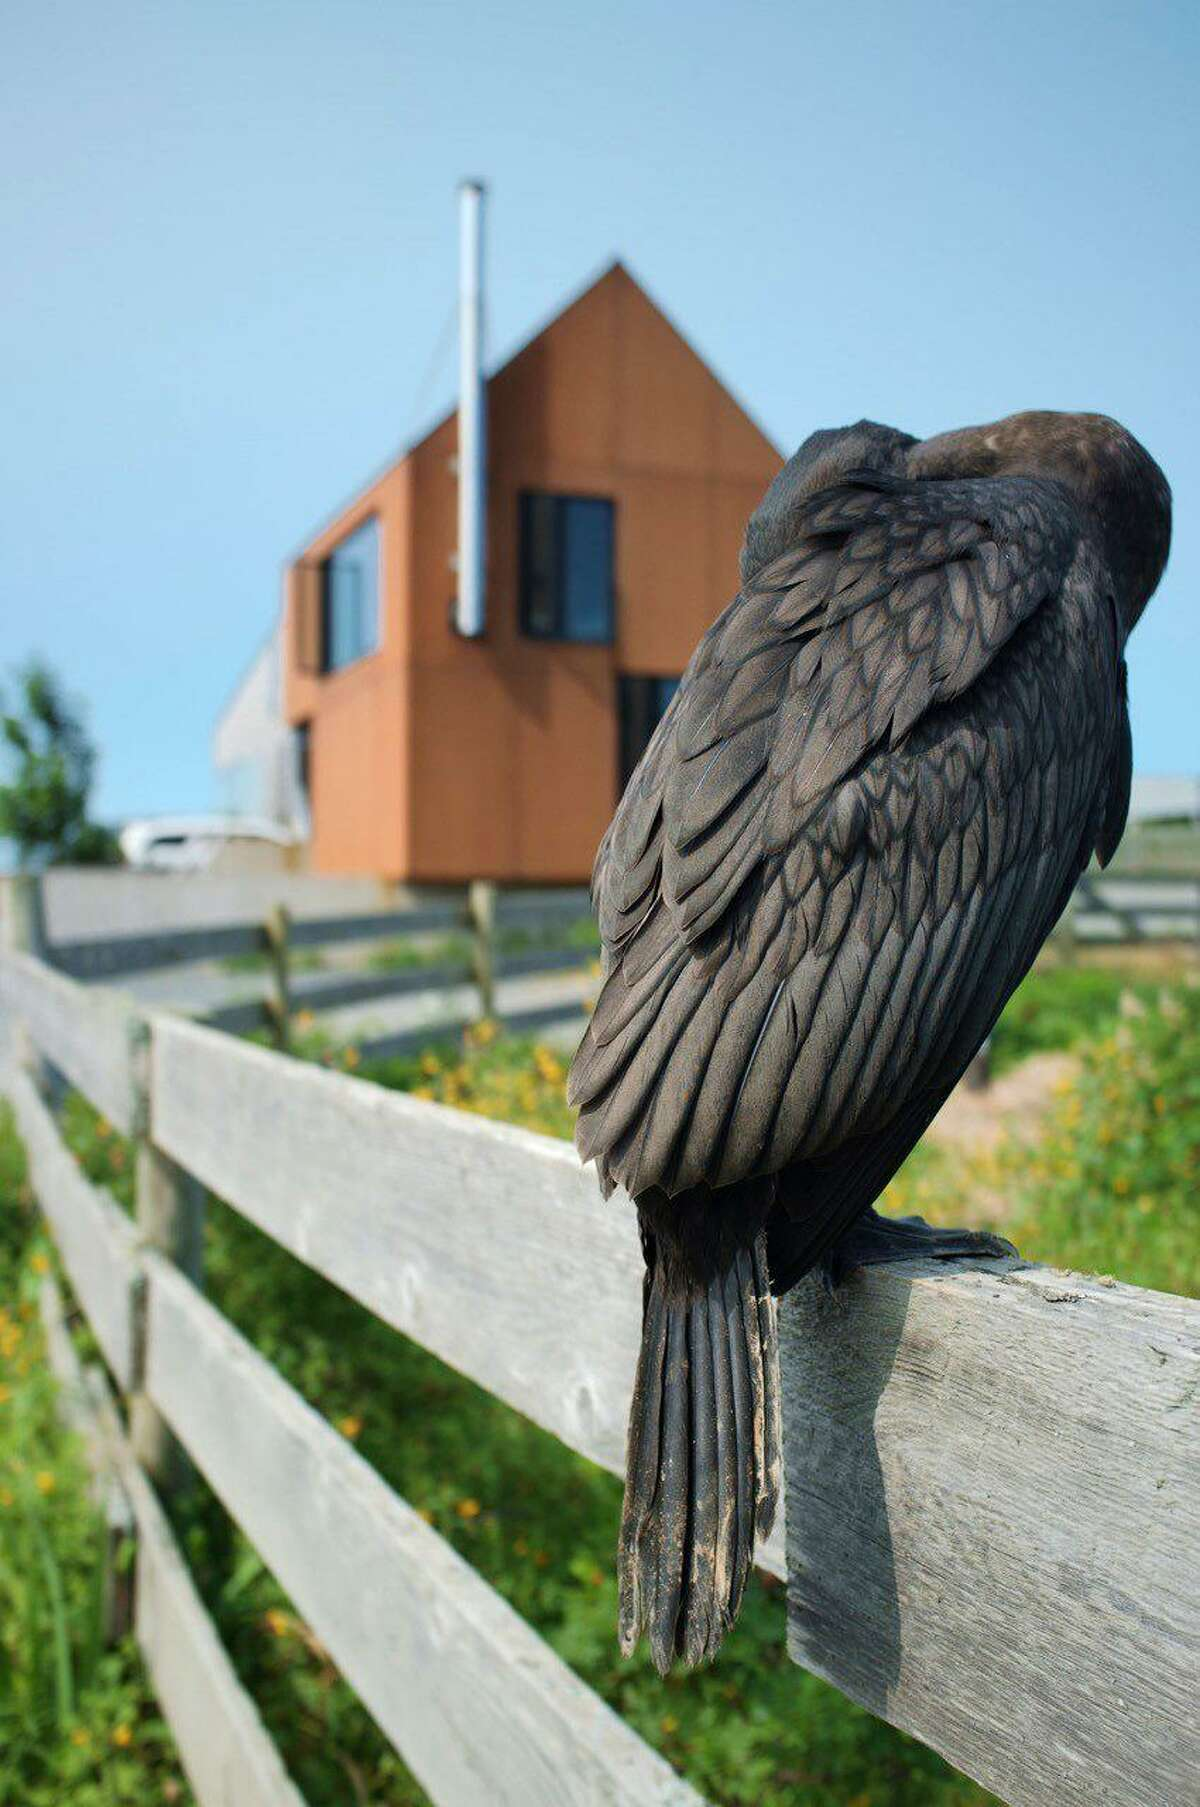 Right, Shobac Bird by Audrey Bloom, of New Canaan, is on display through Feb. 18 as part of the 38th Annual Photography Show at The Carriage Barn Arts Center in Waveny Park.